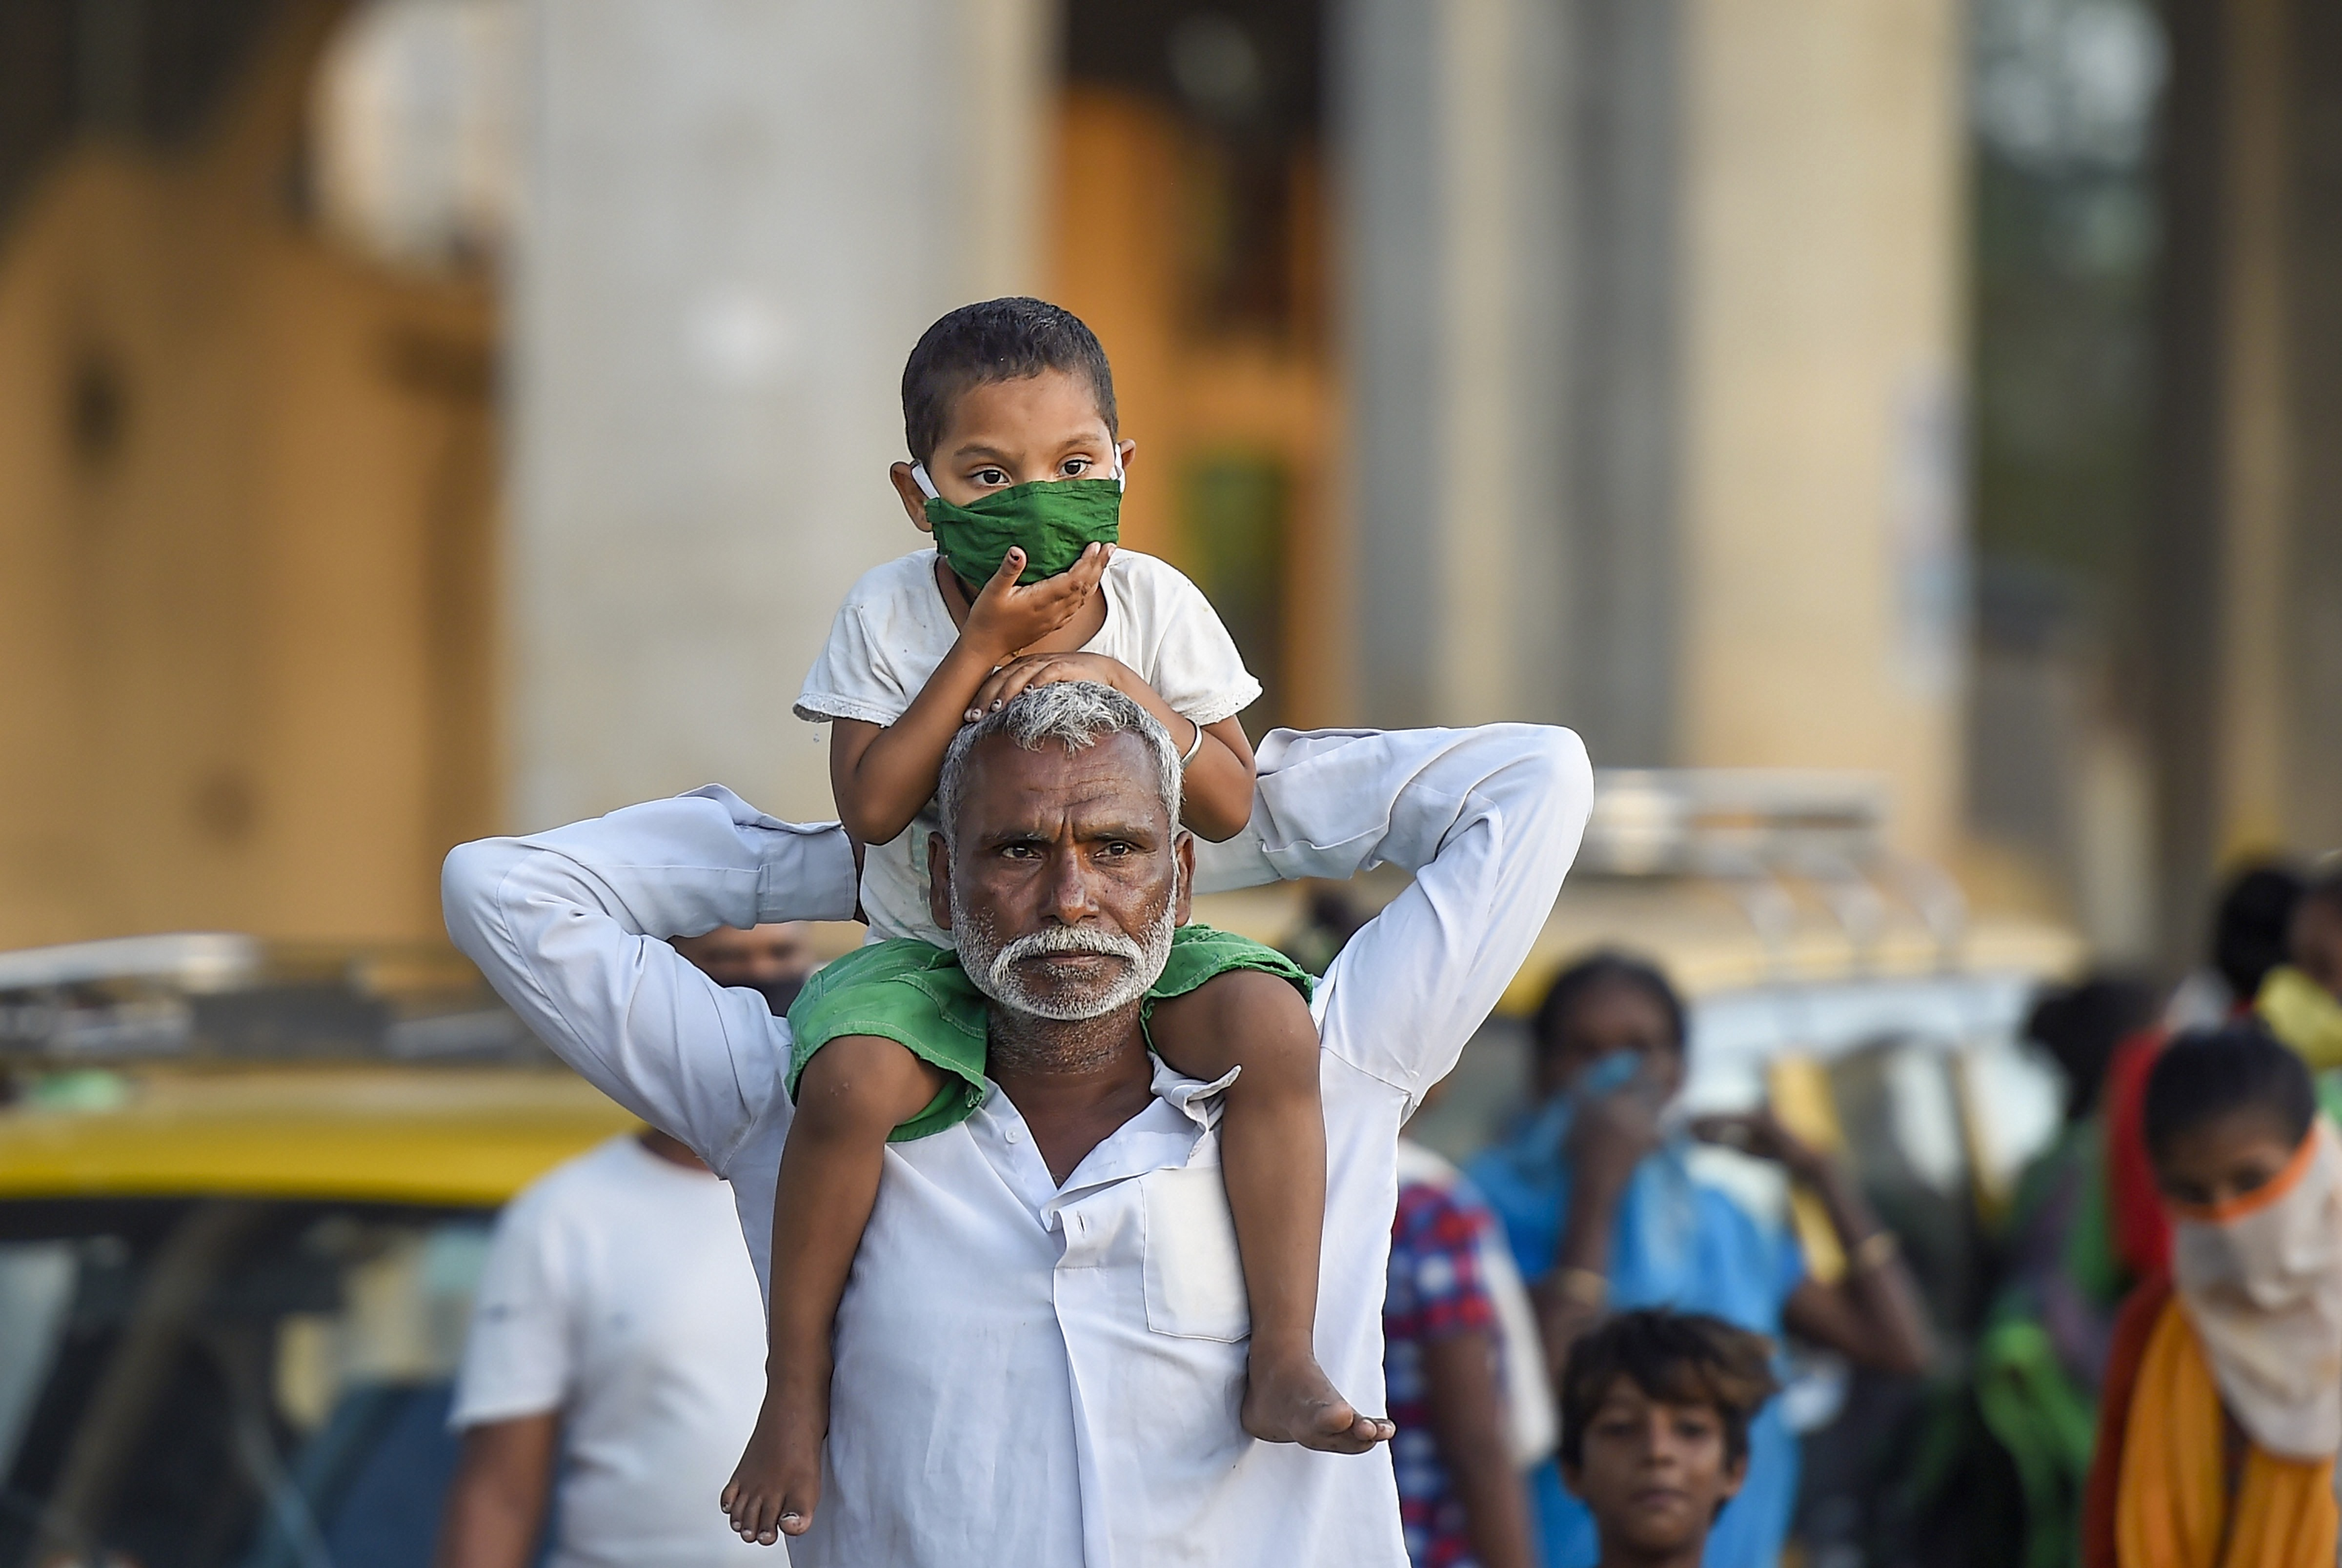 A child wearing a face mask sits on the shoulder of an elderly man during the nationwide lockdown, imposed in the wake of the coronavirus pandemic, at Sion in Mumbai, Wednesday, April 8, 2020